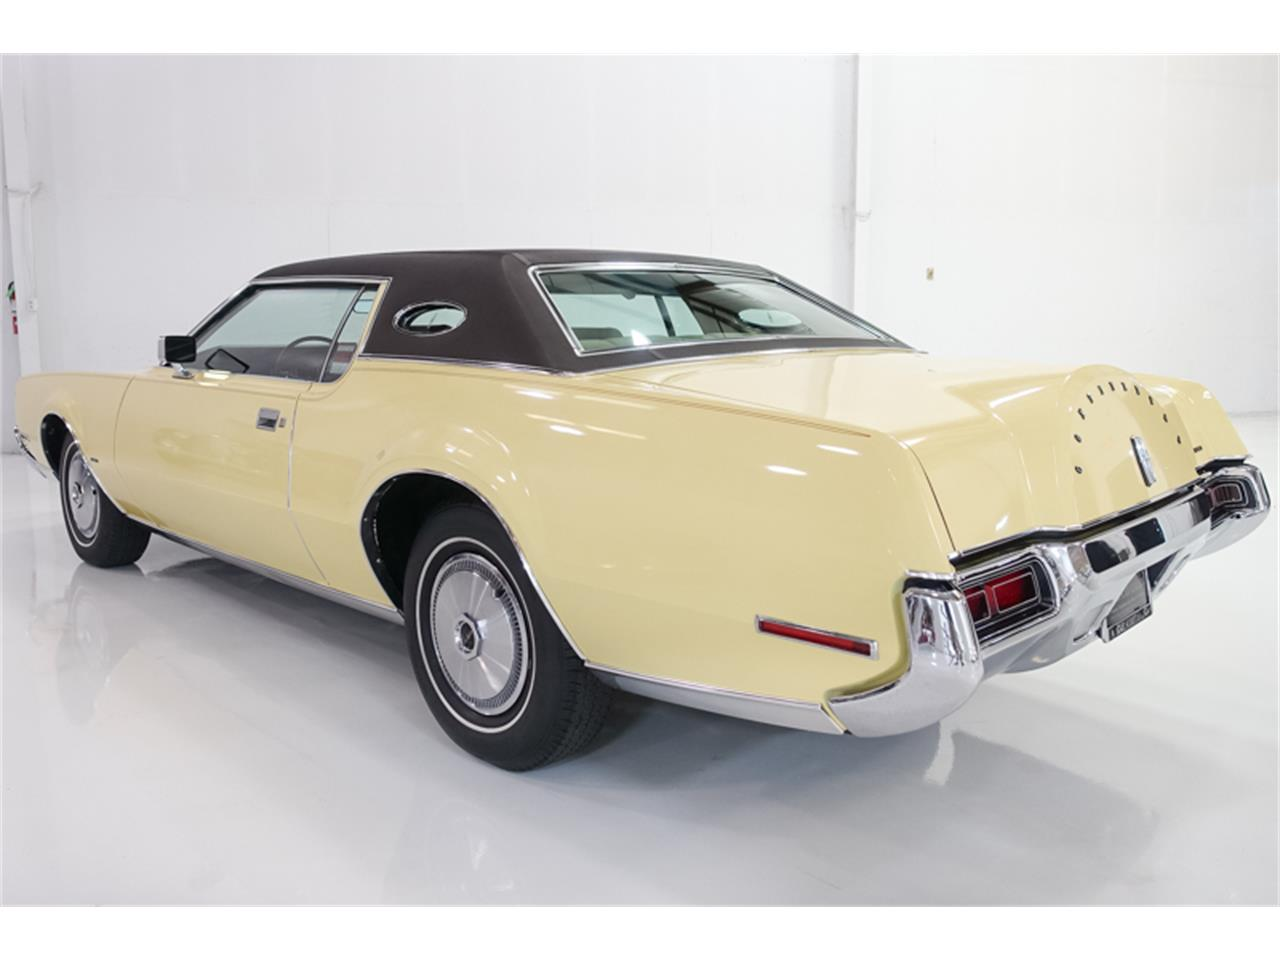 1972 Lincoln Continental Mark IV for sale in St. Louis, MO – photo 12